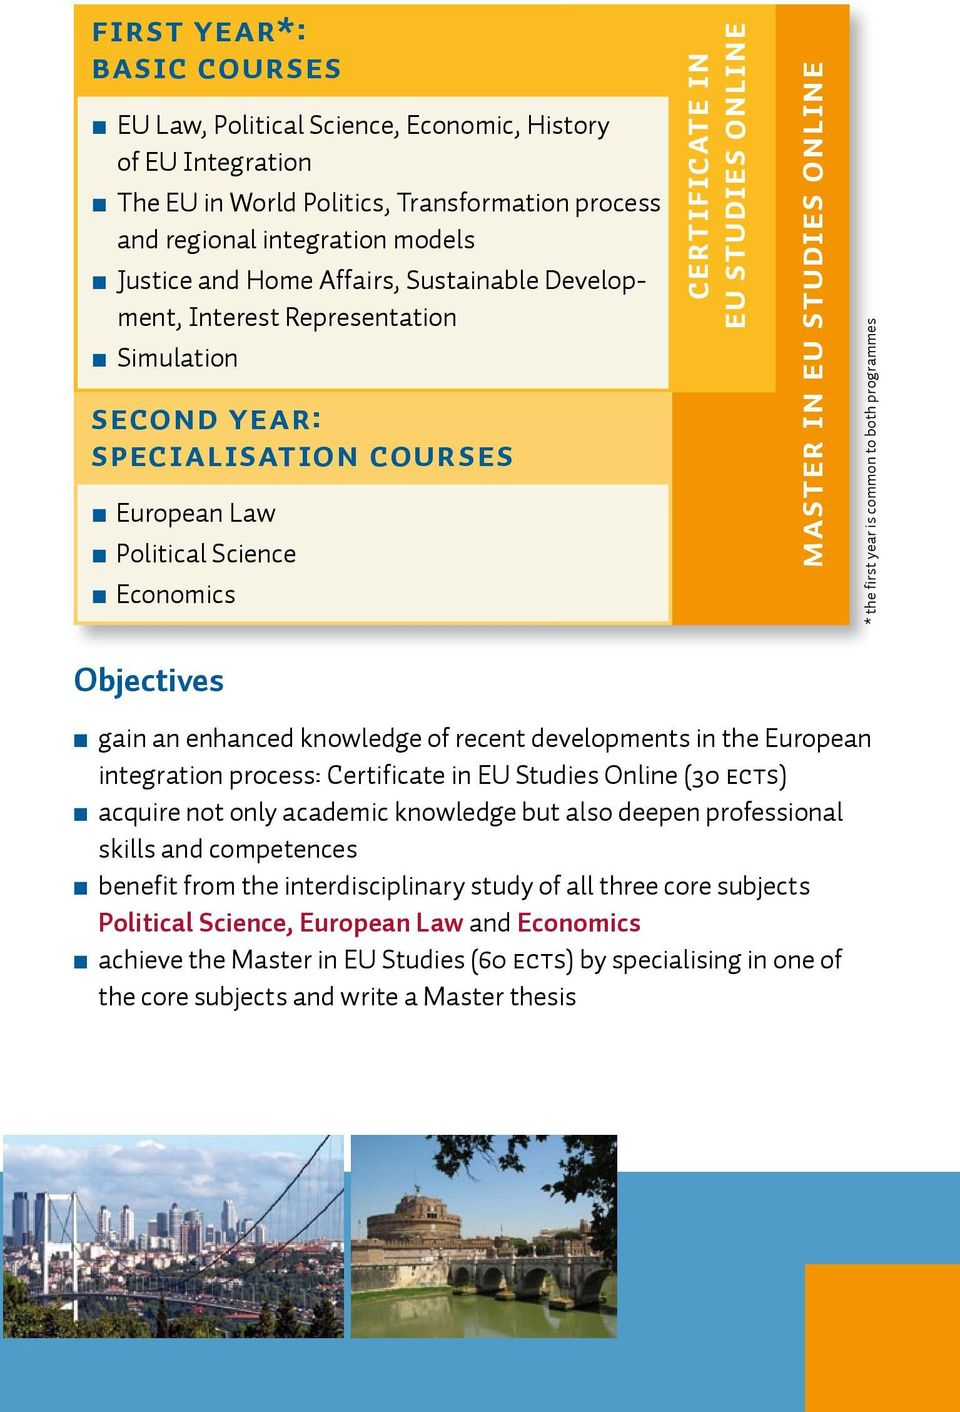 master in eu studies ONLINE * the first year is common to both programmes n gain an enhanced knowledge of recent developments in the European integration process: Certificate in EU Studies Online (30